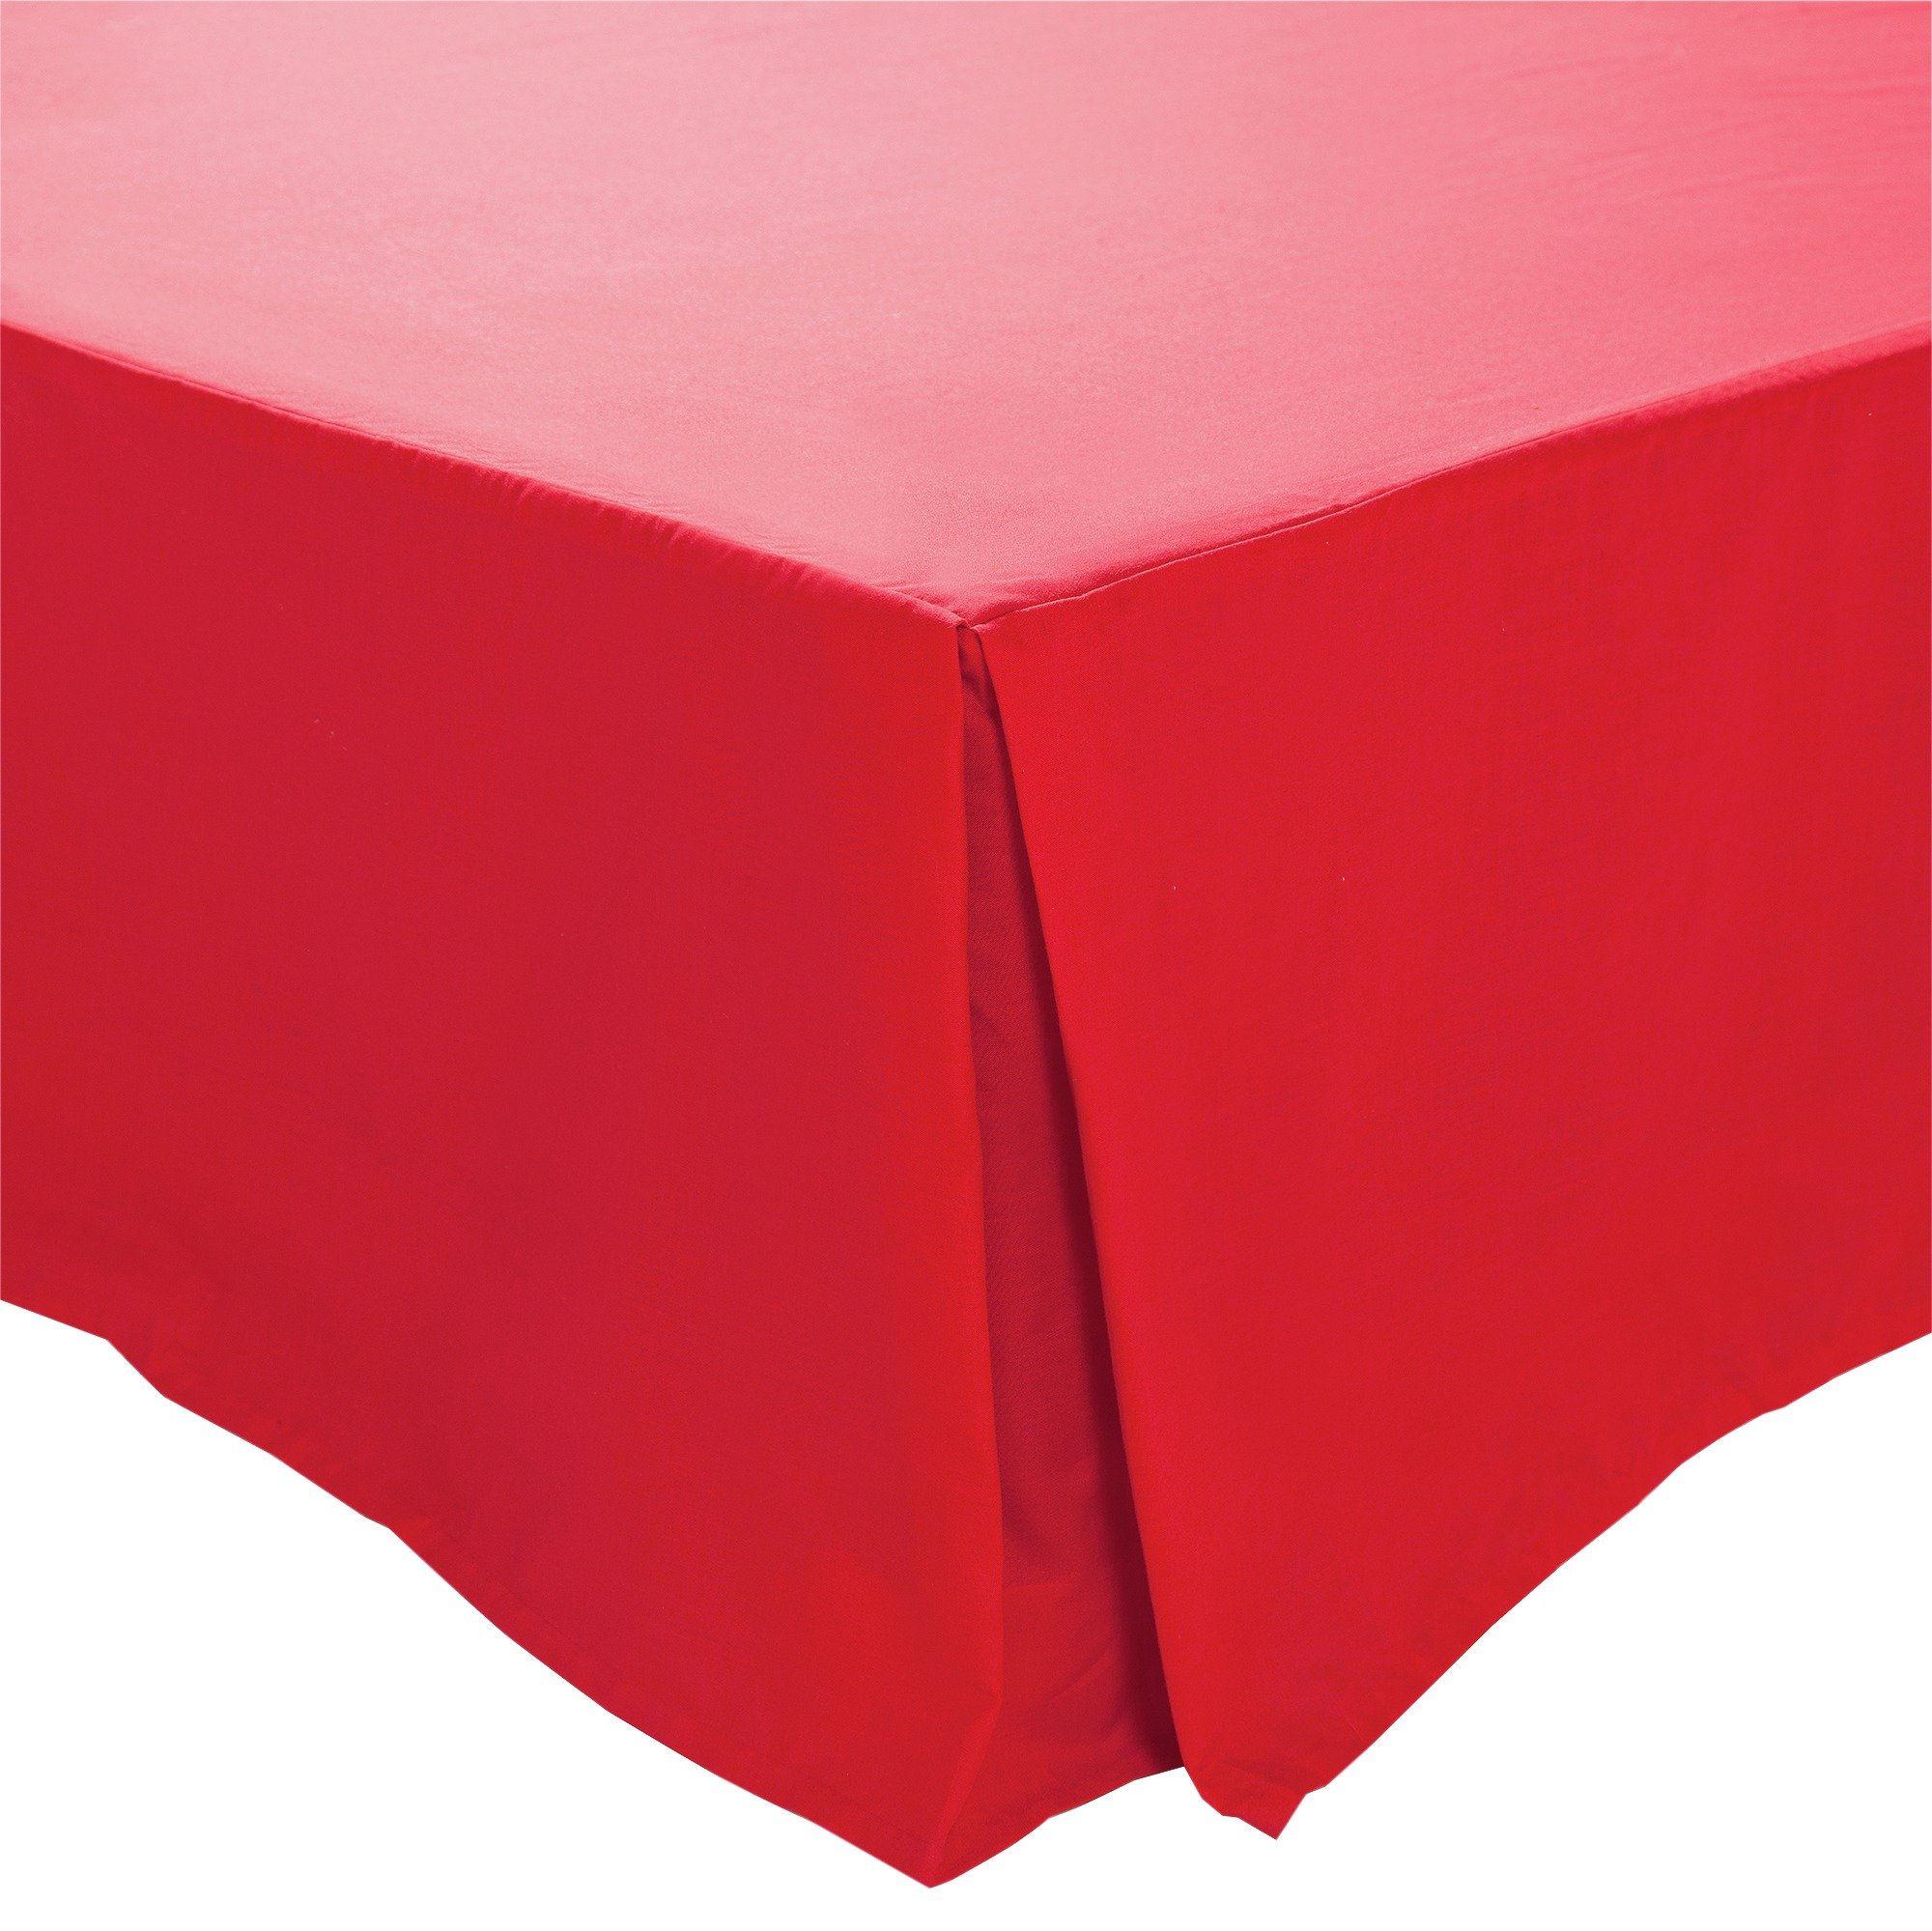 colourmatch poppy red valance  double